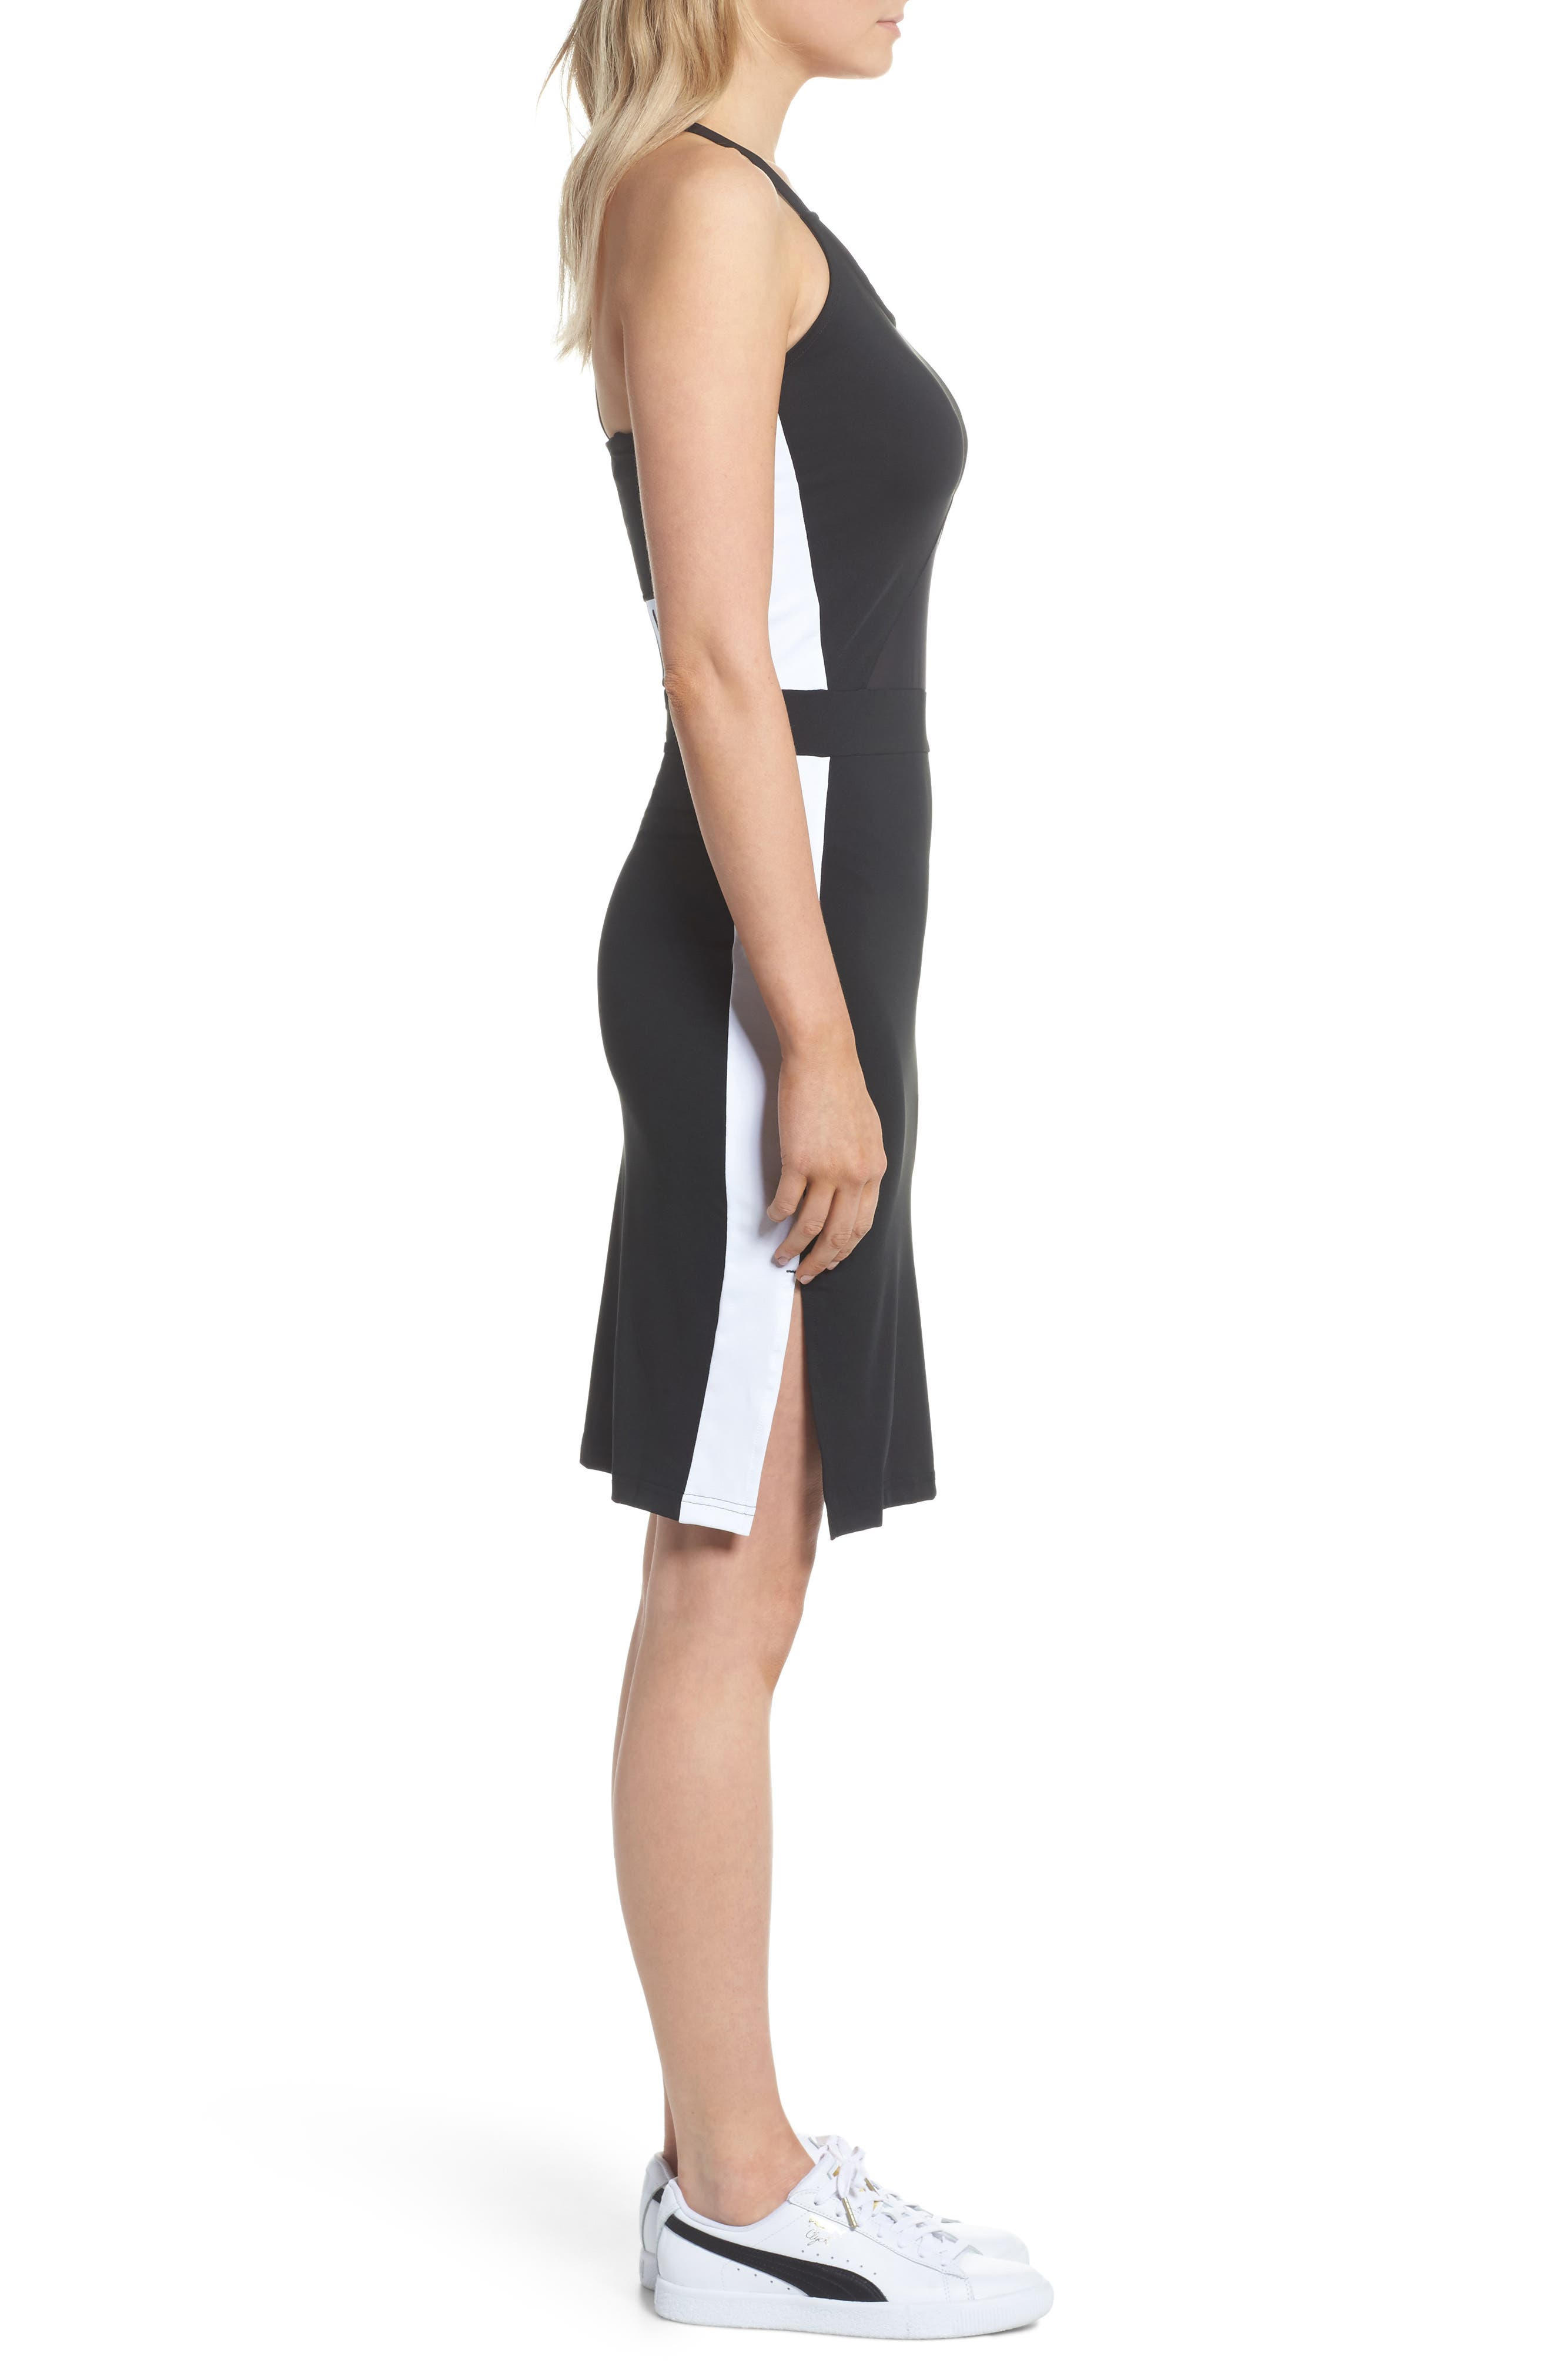 Archive T7 Dress,                             Alternate thumbnail 3, color,                             Puma Black